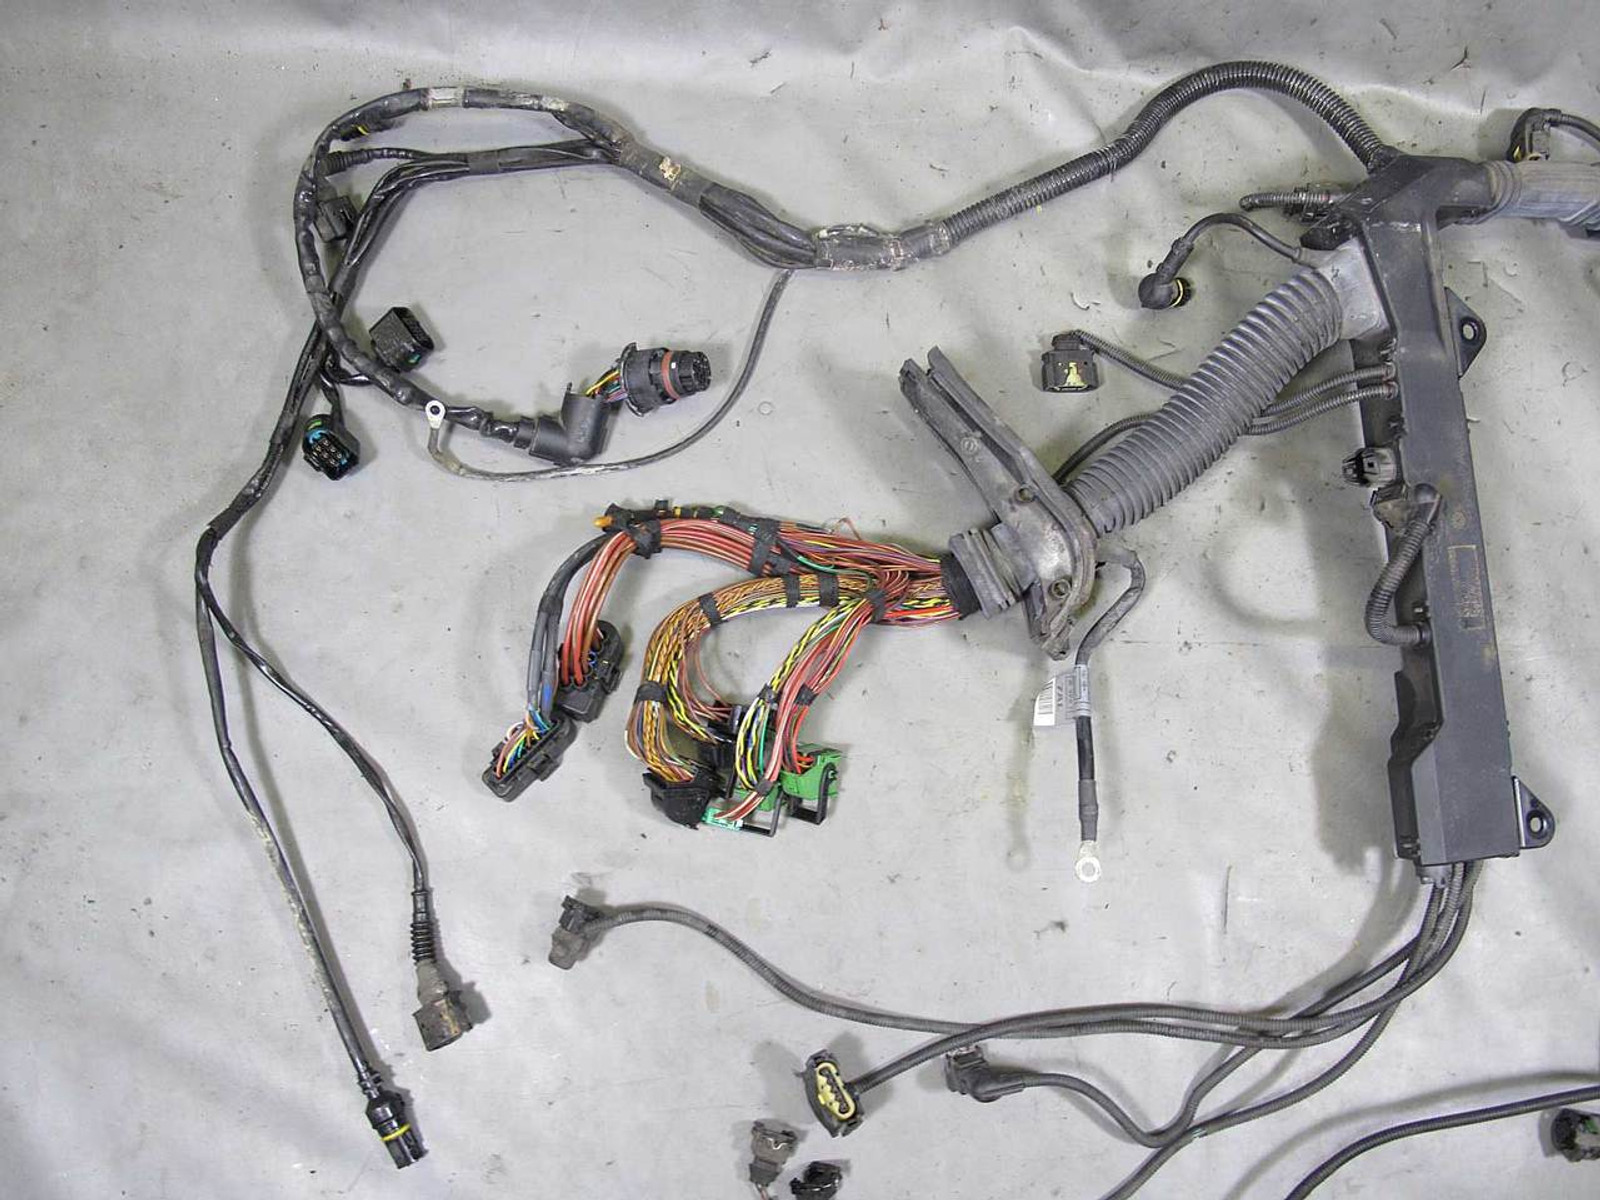 hight resolution of bmw 745 wiring wiring librarybmw e65 e66 745i 745il n62 v8 engine wiring harness w broken